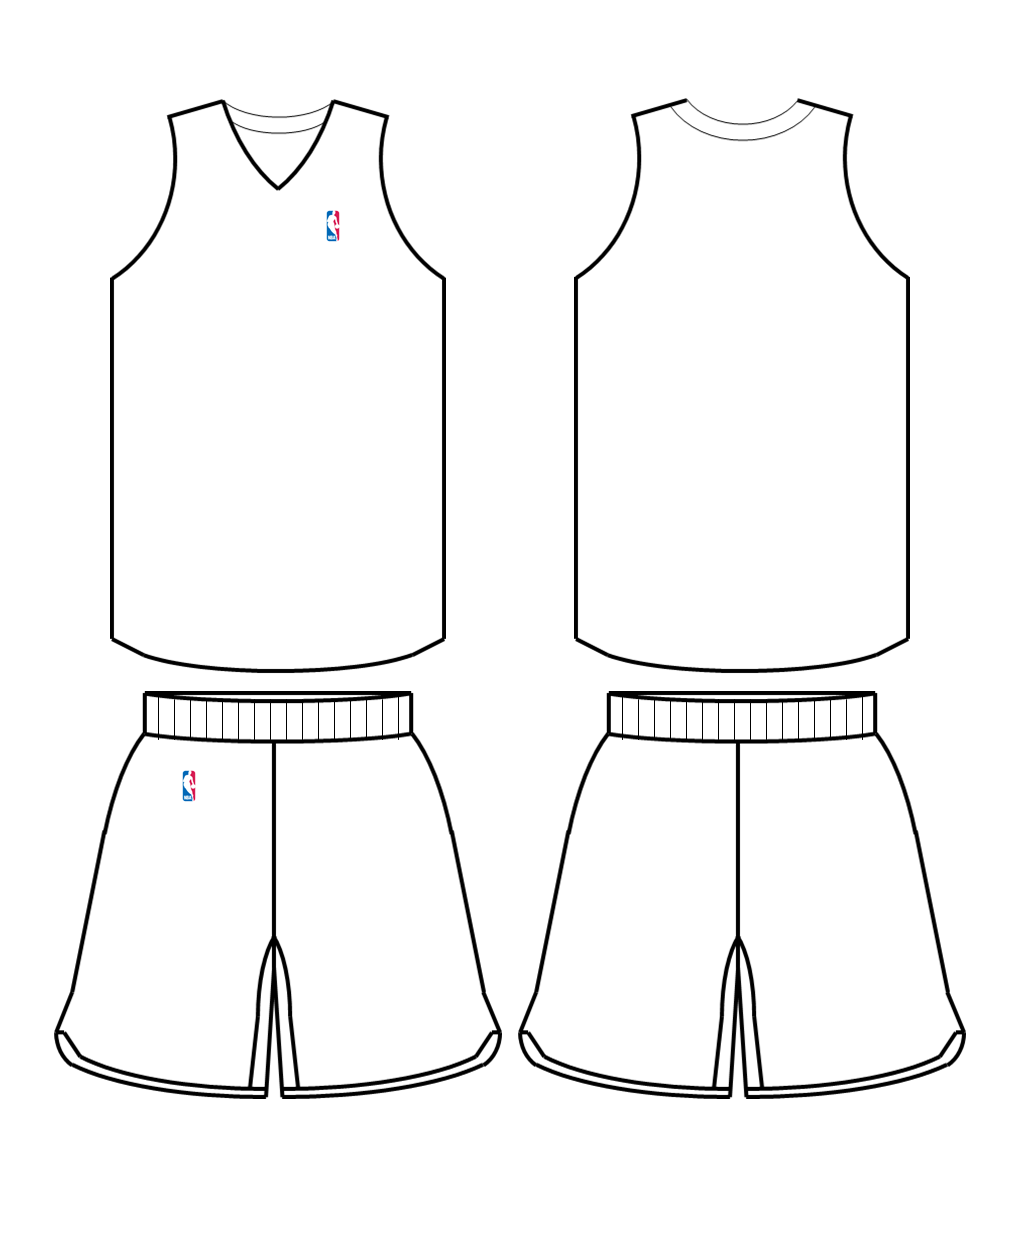 nba jerseys coloring pages - photo#22